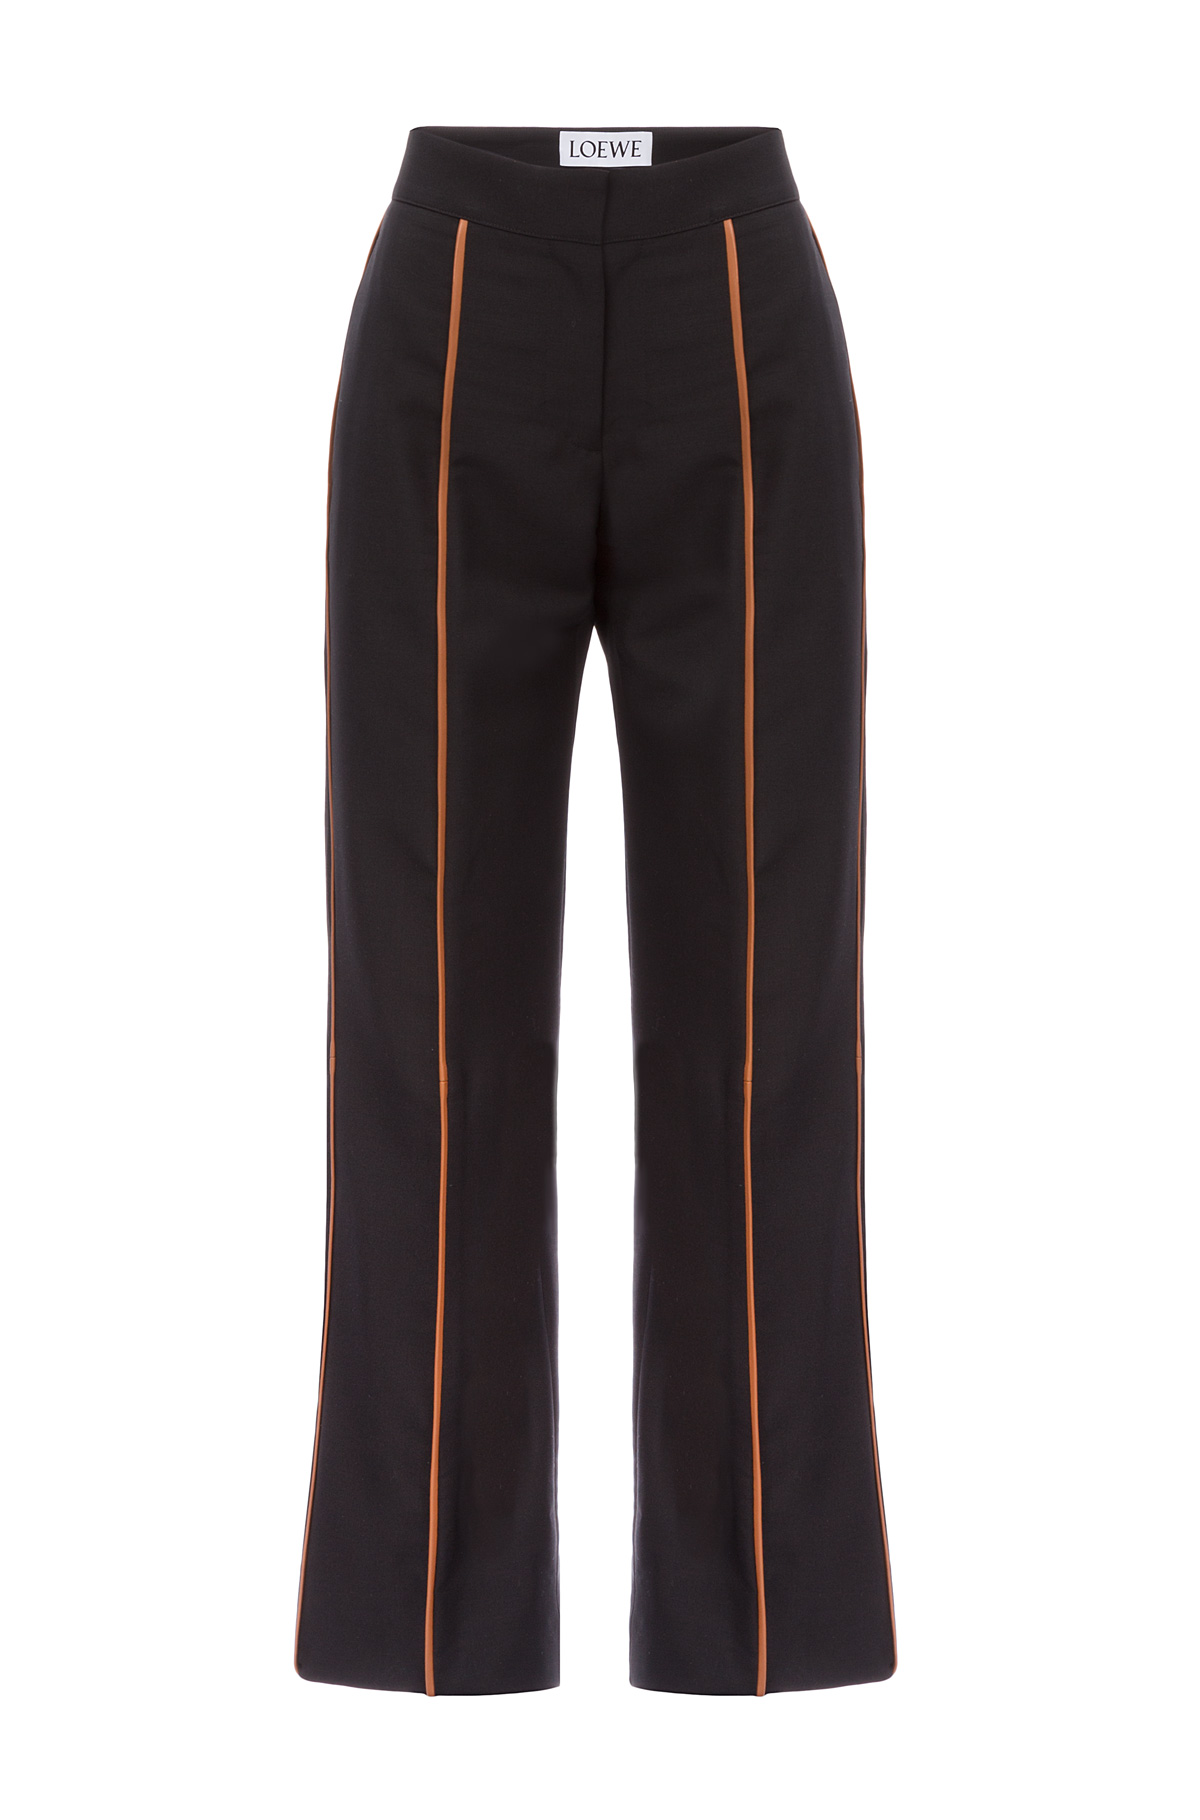 LOEWE Tan Piping Cropped Trousers Black/Tan front